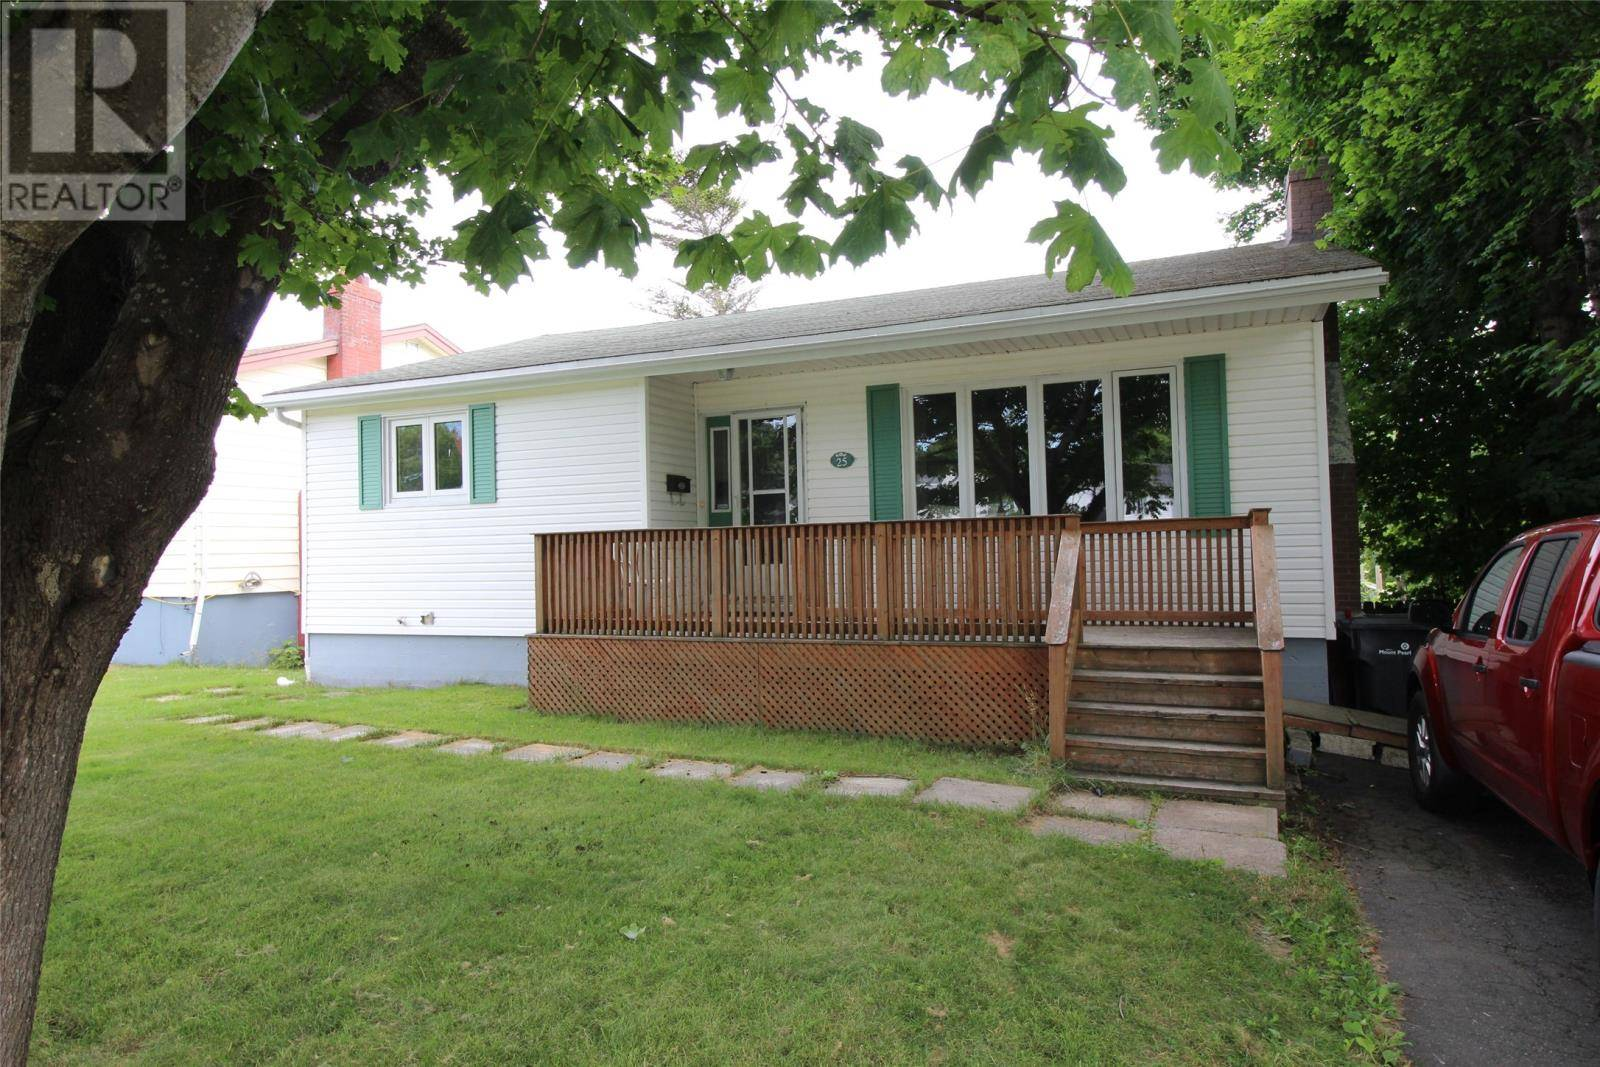 House for sale at 25 Smallwood Dr Mt. Pearl Newfoundland - MLS: 1201070